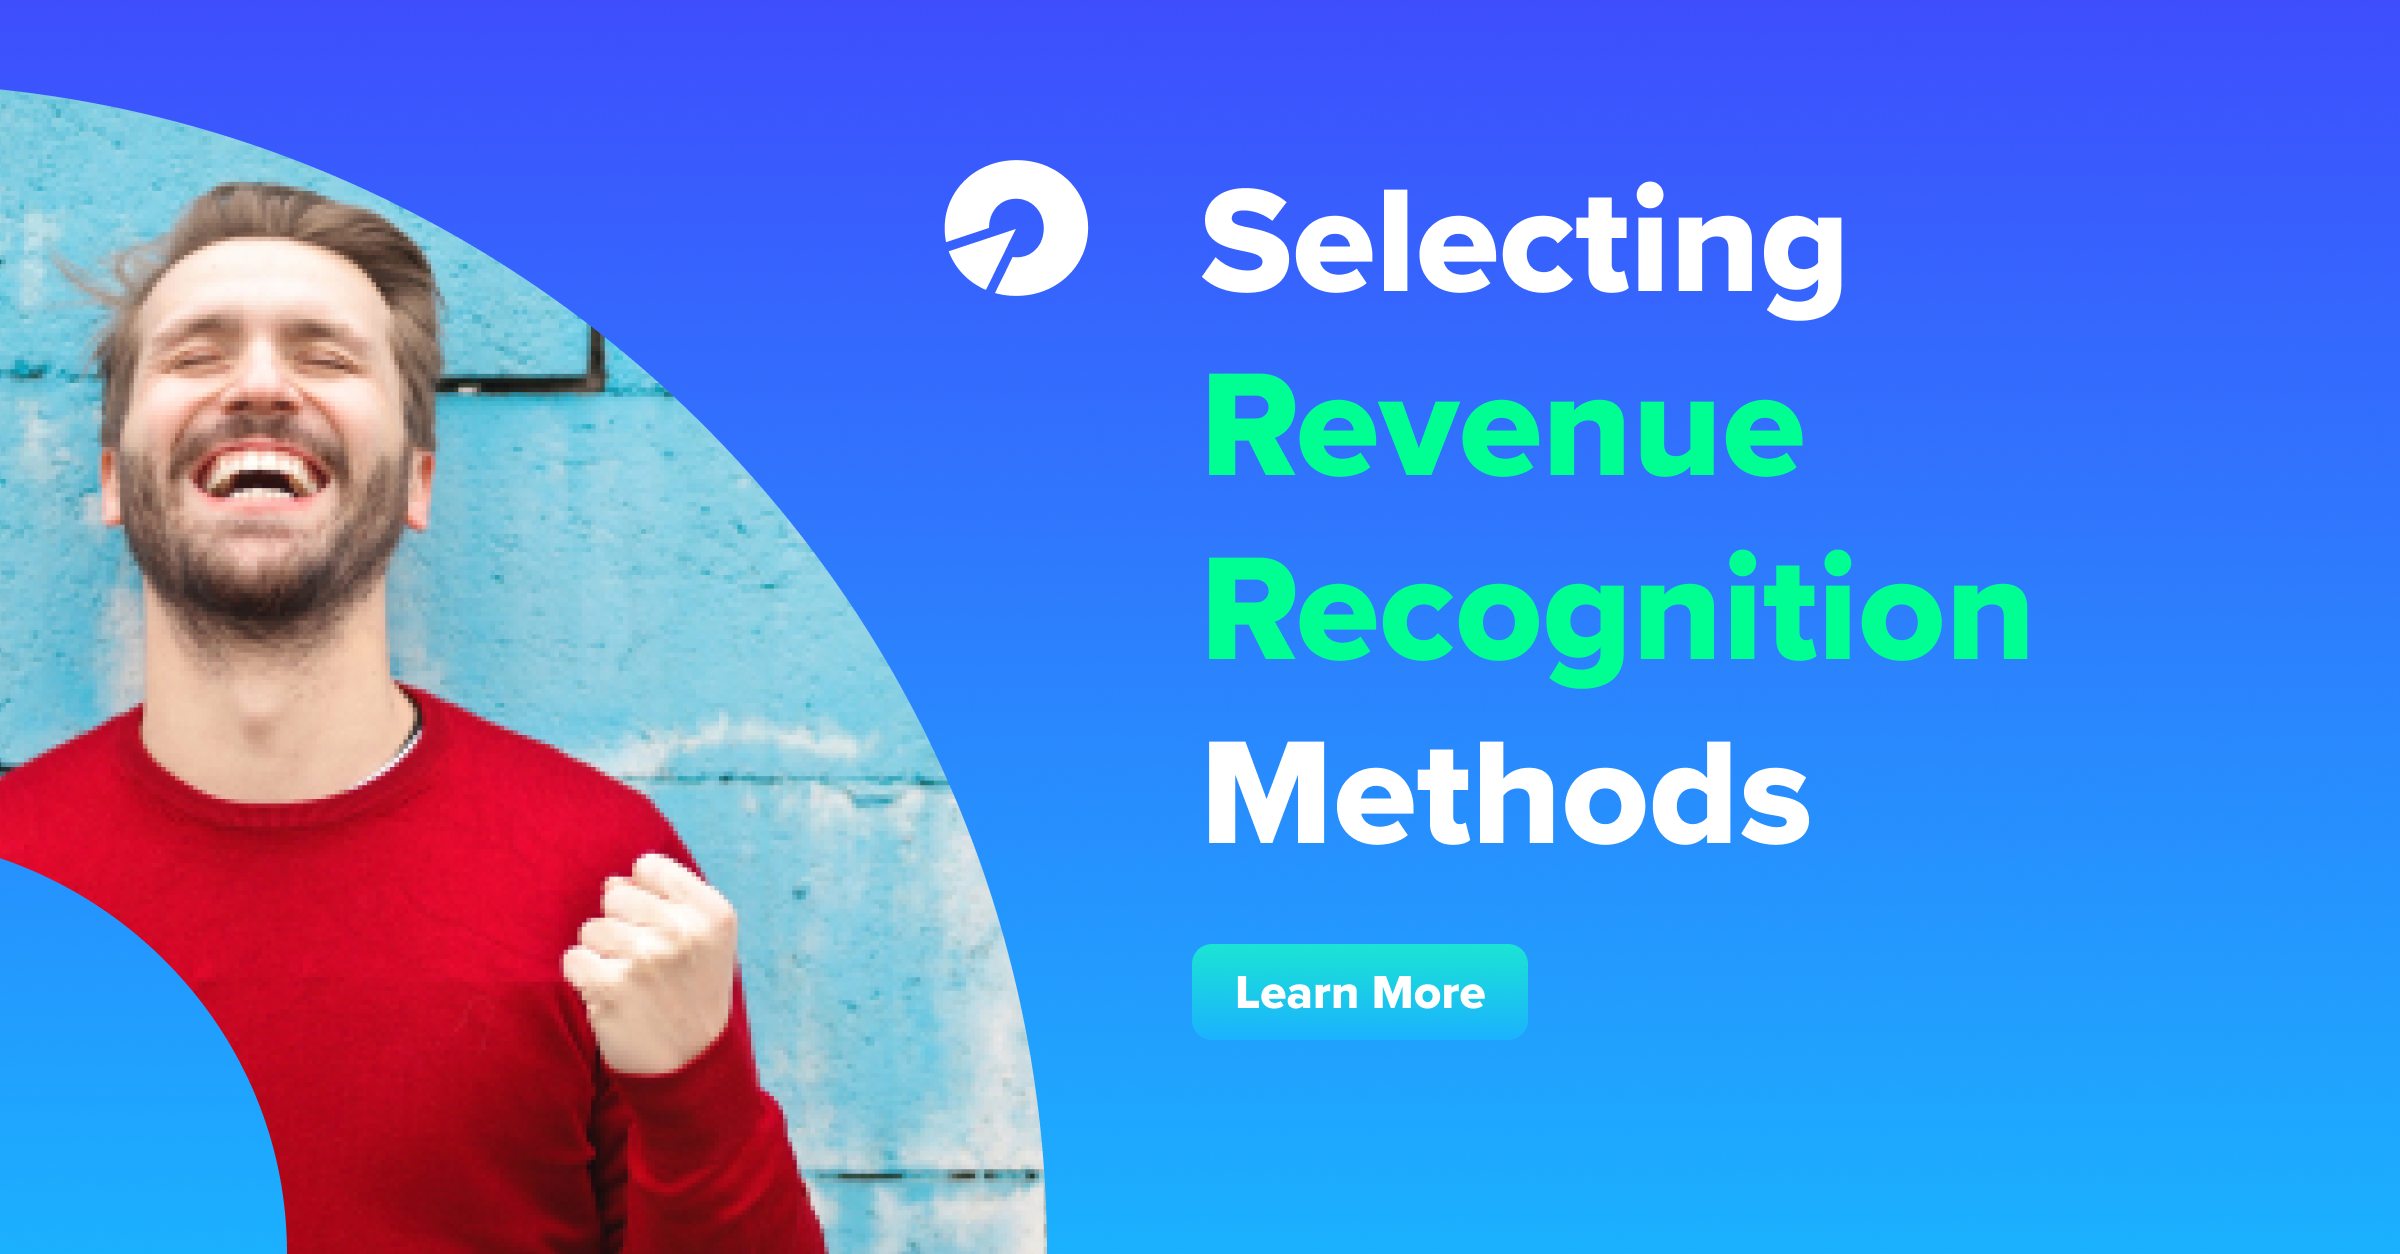 Selecting Revenue Recognition Methods